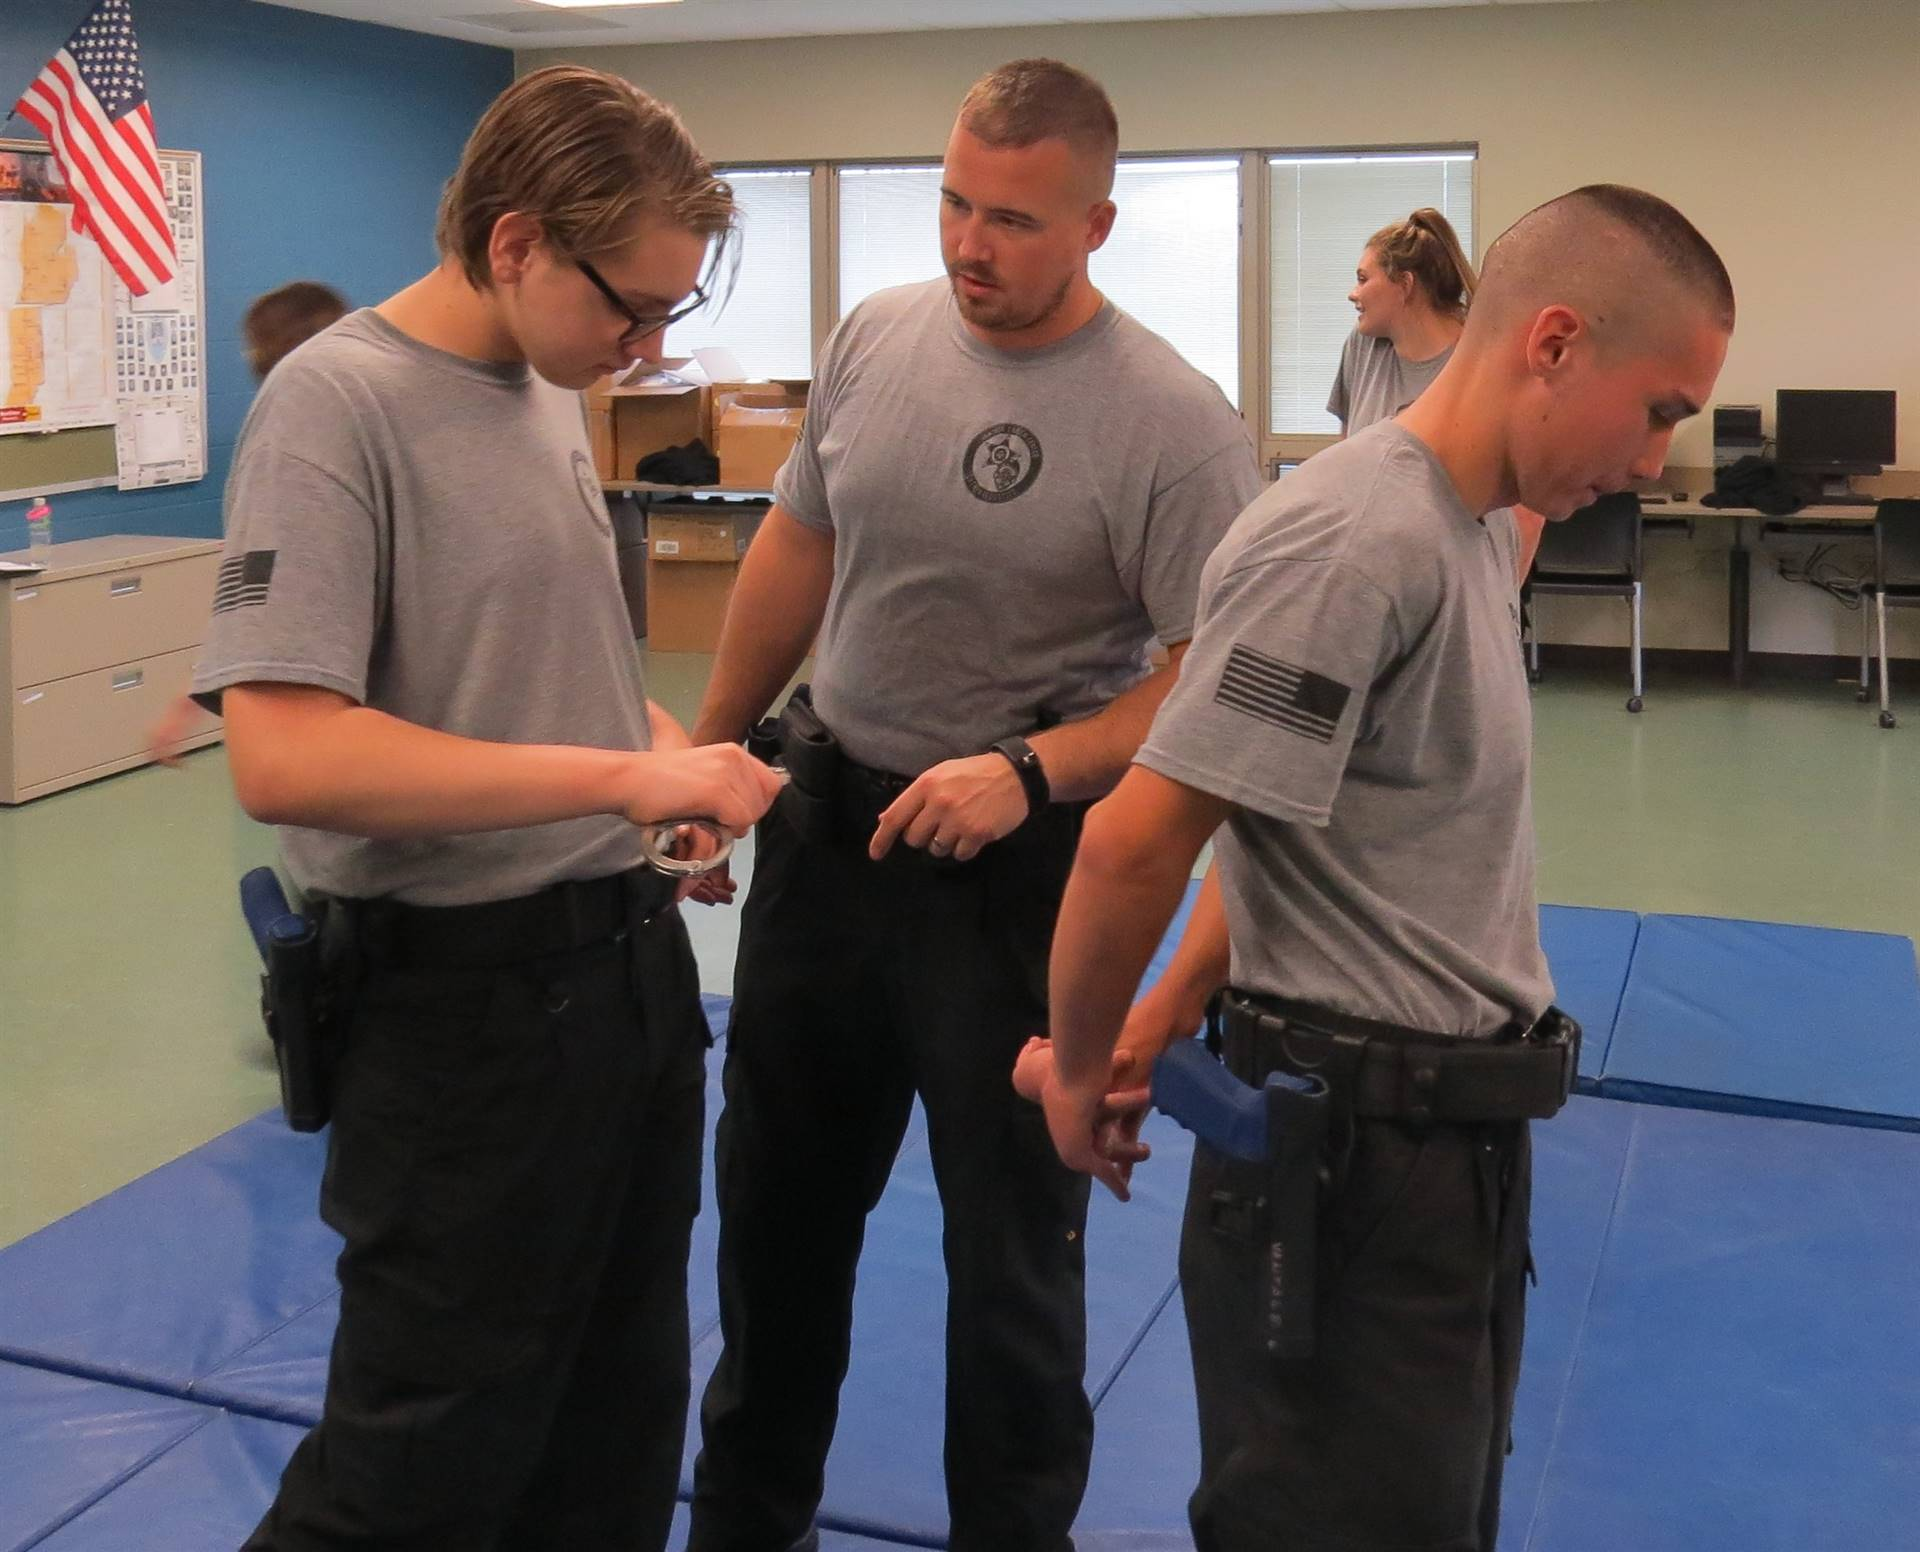 Criminal Justice female student practicing handcuffing skills